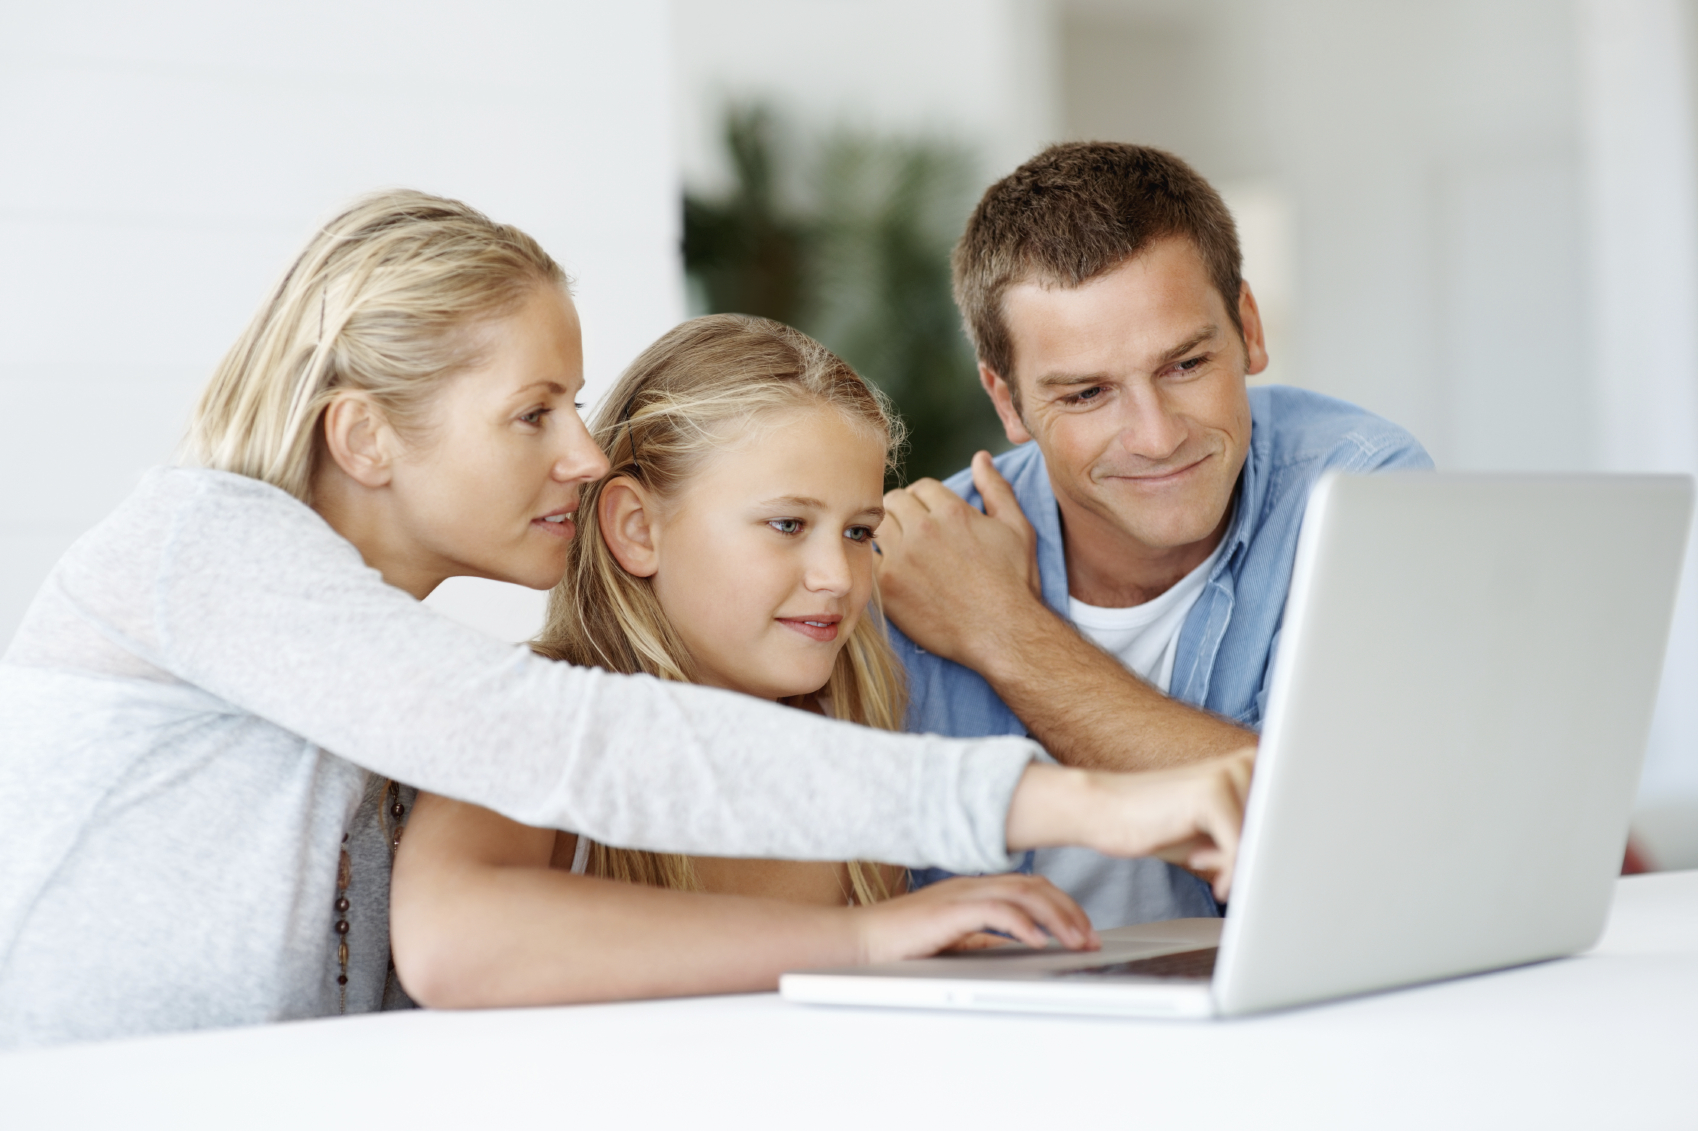 peoples home gadgets essay